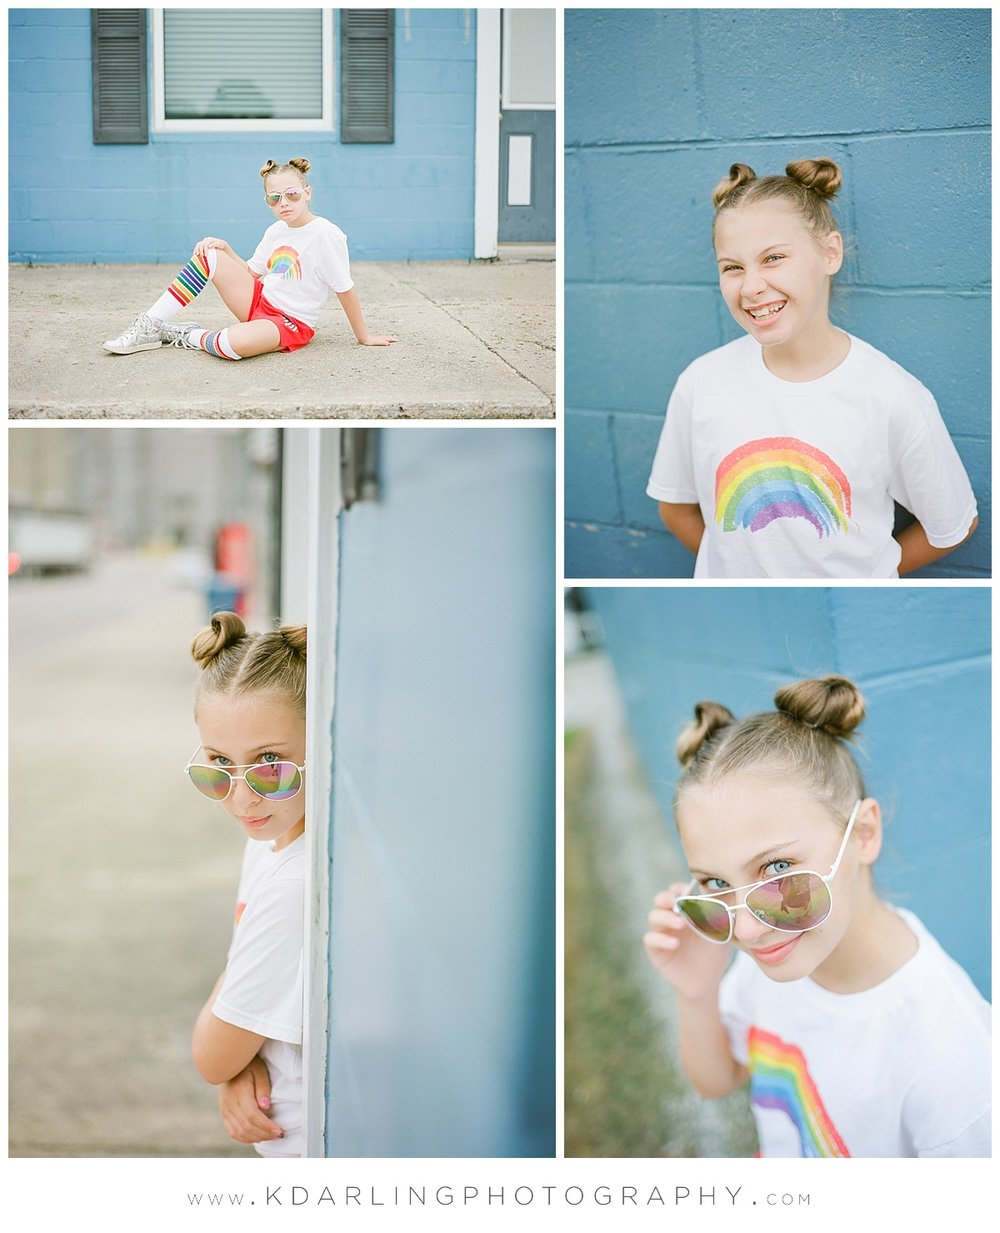 Central-illinois-Photographer-child-film-photography-Champaign-mamiya-fuji-rainbow-back-to-school-session_0436.jpg